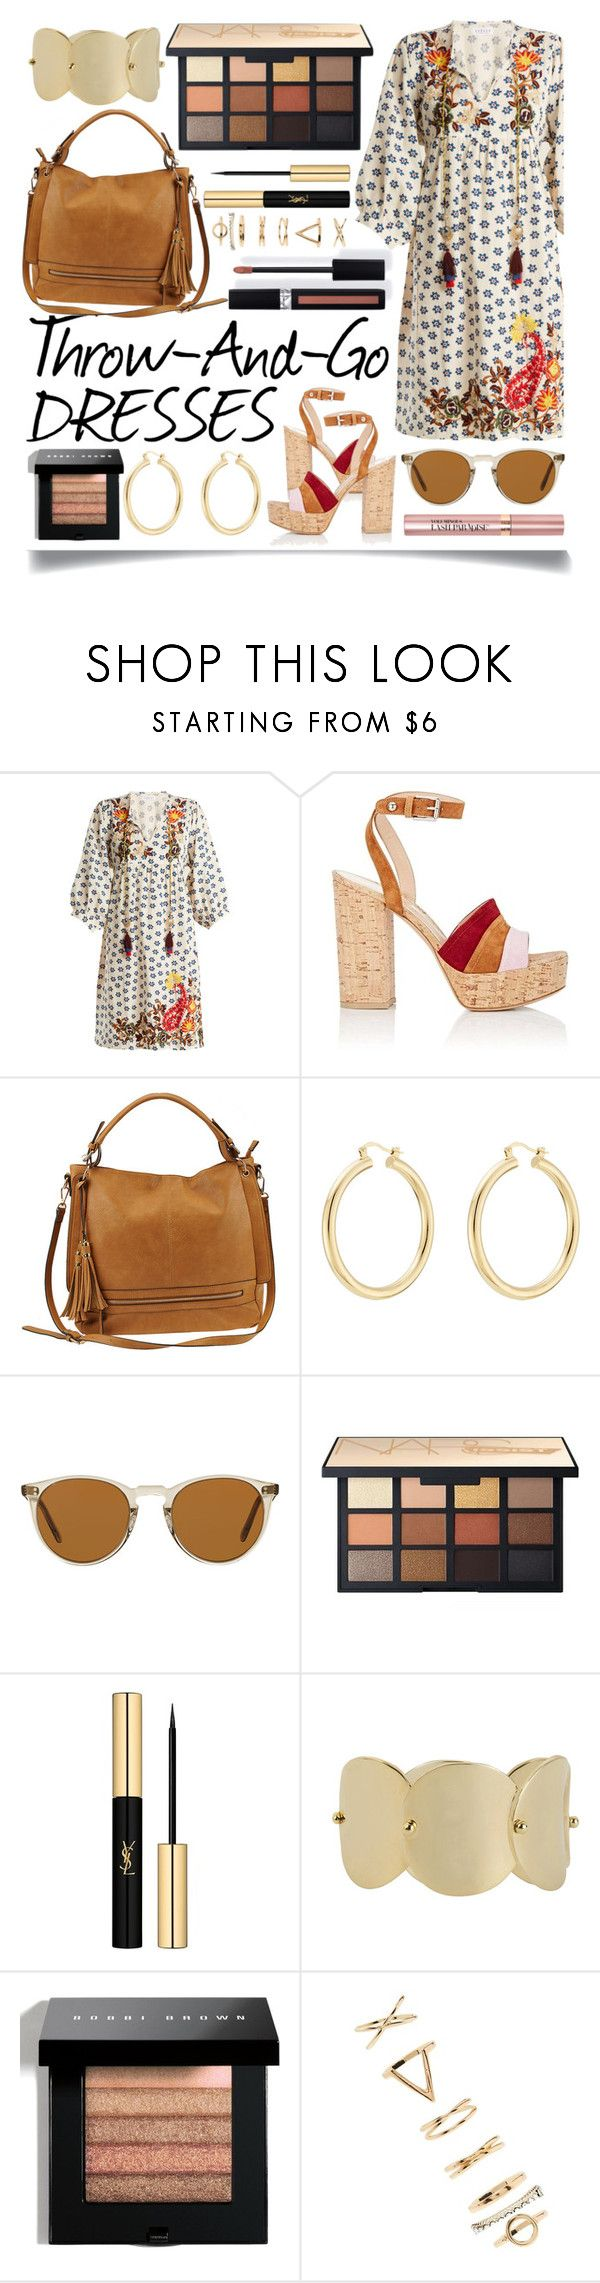 """""""Throw-And-Go Dresses"""" by ittie-kittie ❤ liked on Polyvore featuring Velvet by Graham & Spencer, Gianvito Rossi, Urban Expressions, Isabel Marant, Oliver Peoples, Yves Saint Laurent, Eddie Borgo, Bobbi Brown Cosmetics, Couture Colour and Forever 21"""